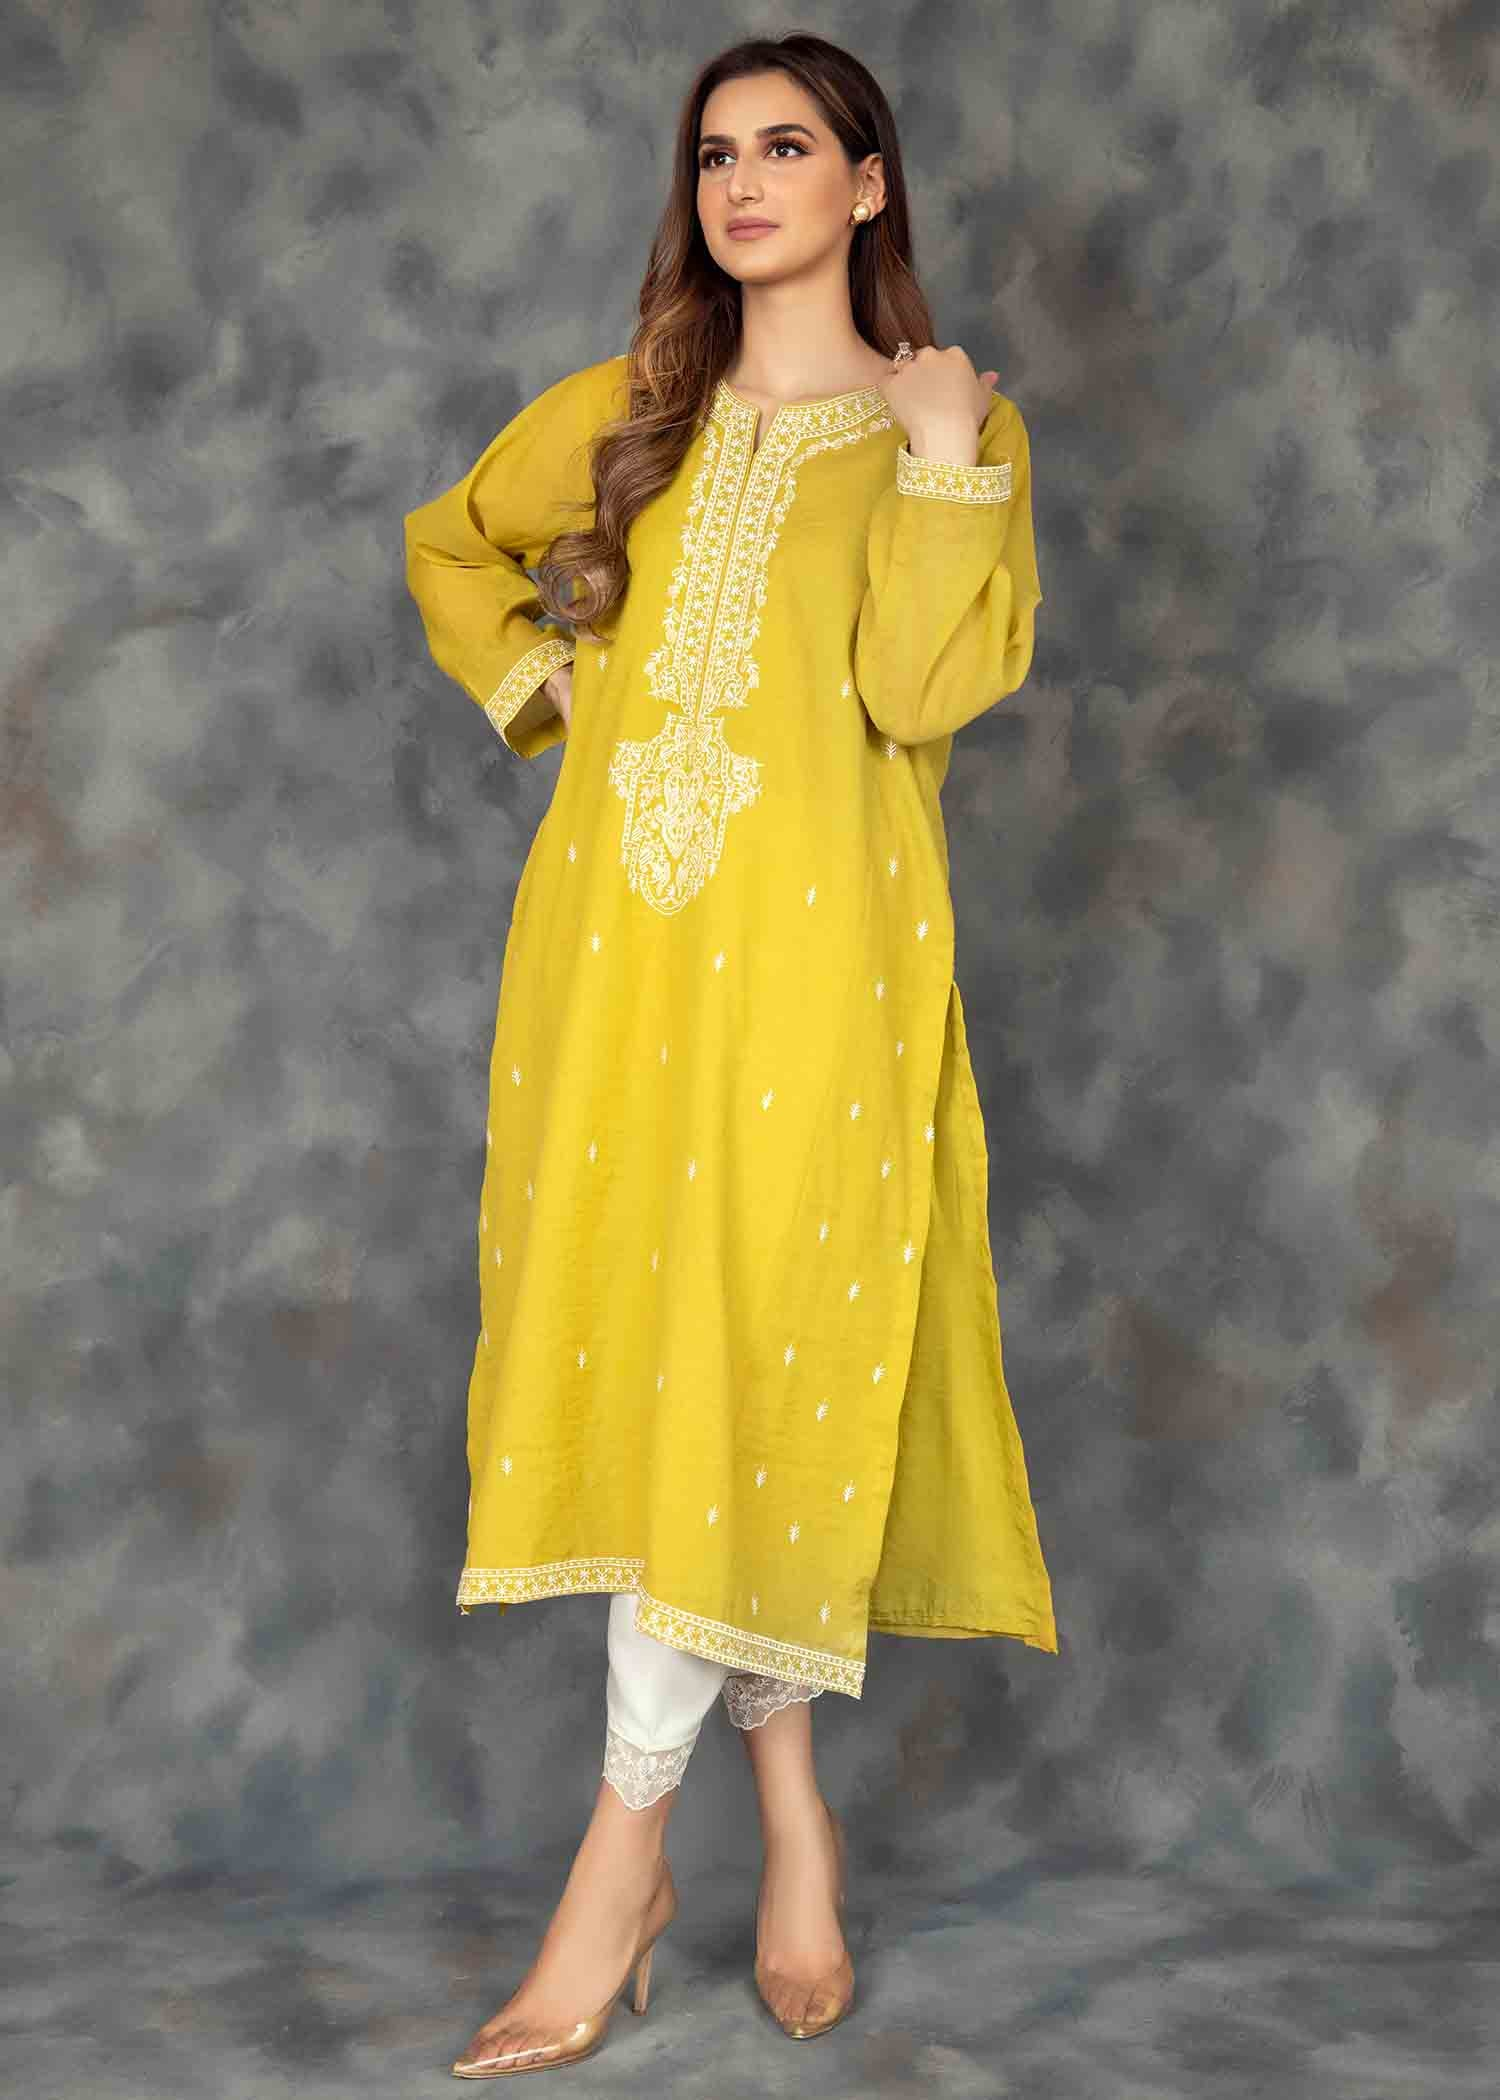 Lemon Yellow Emb kurta